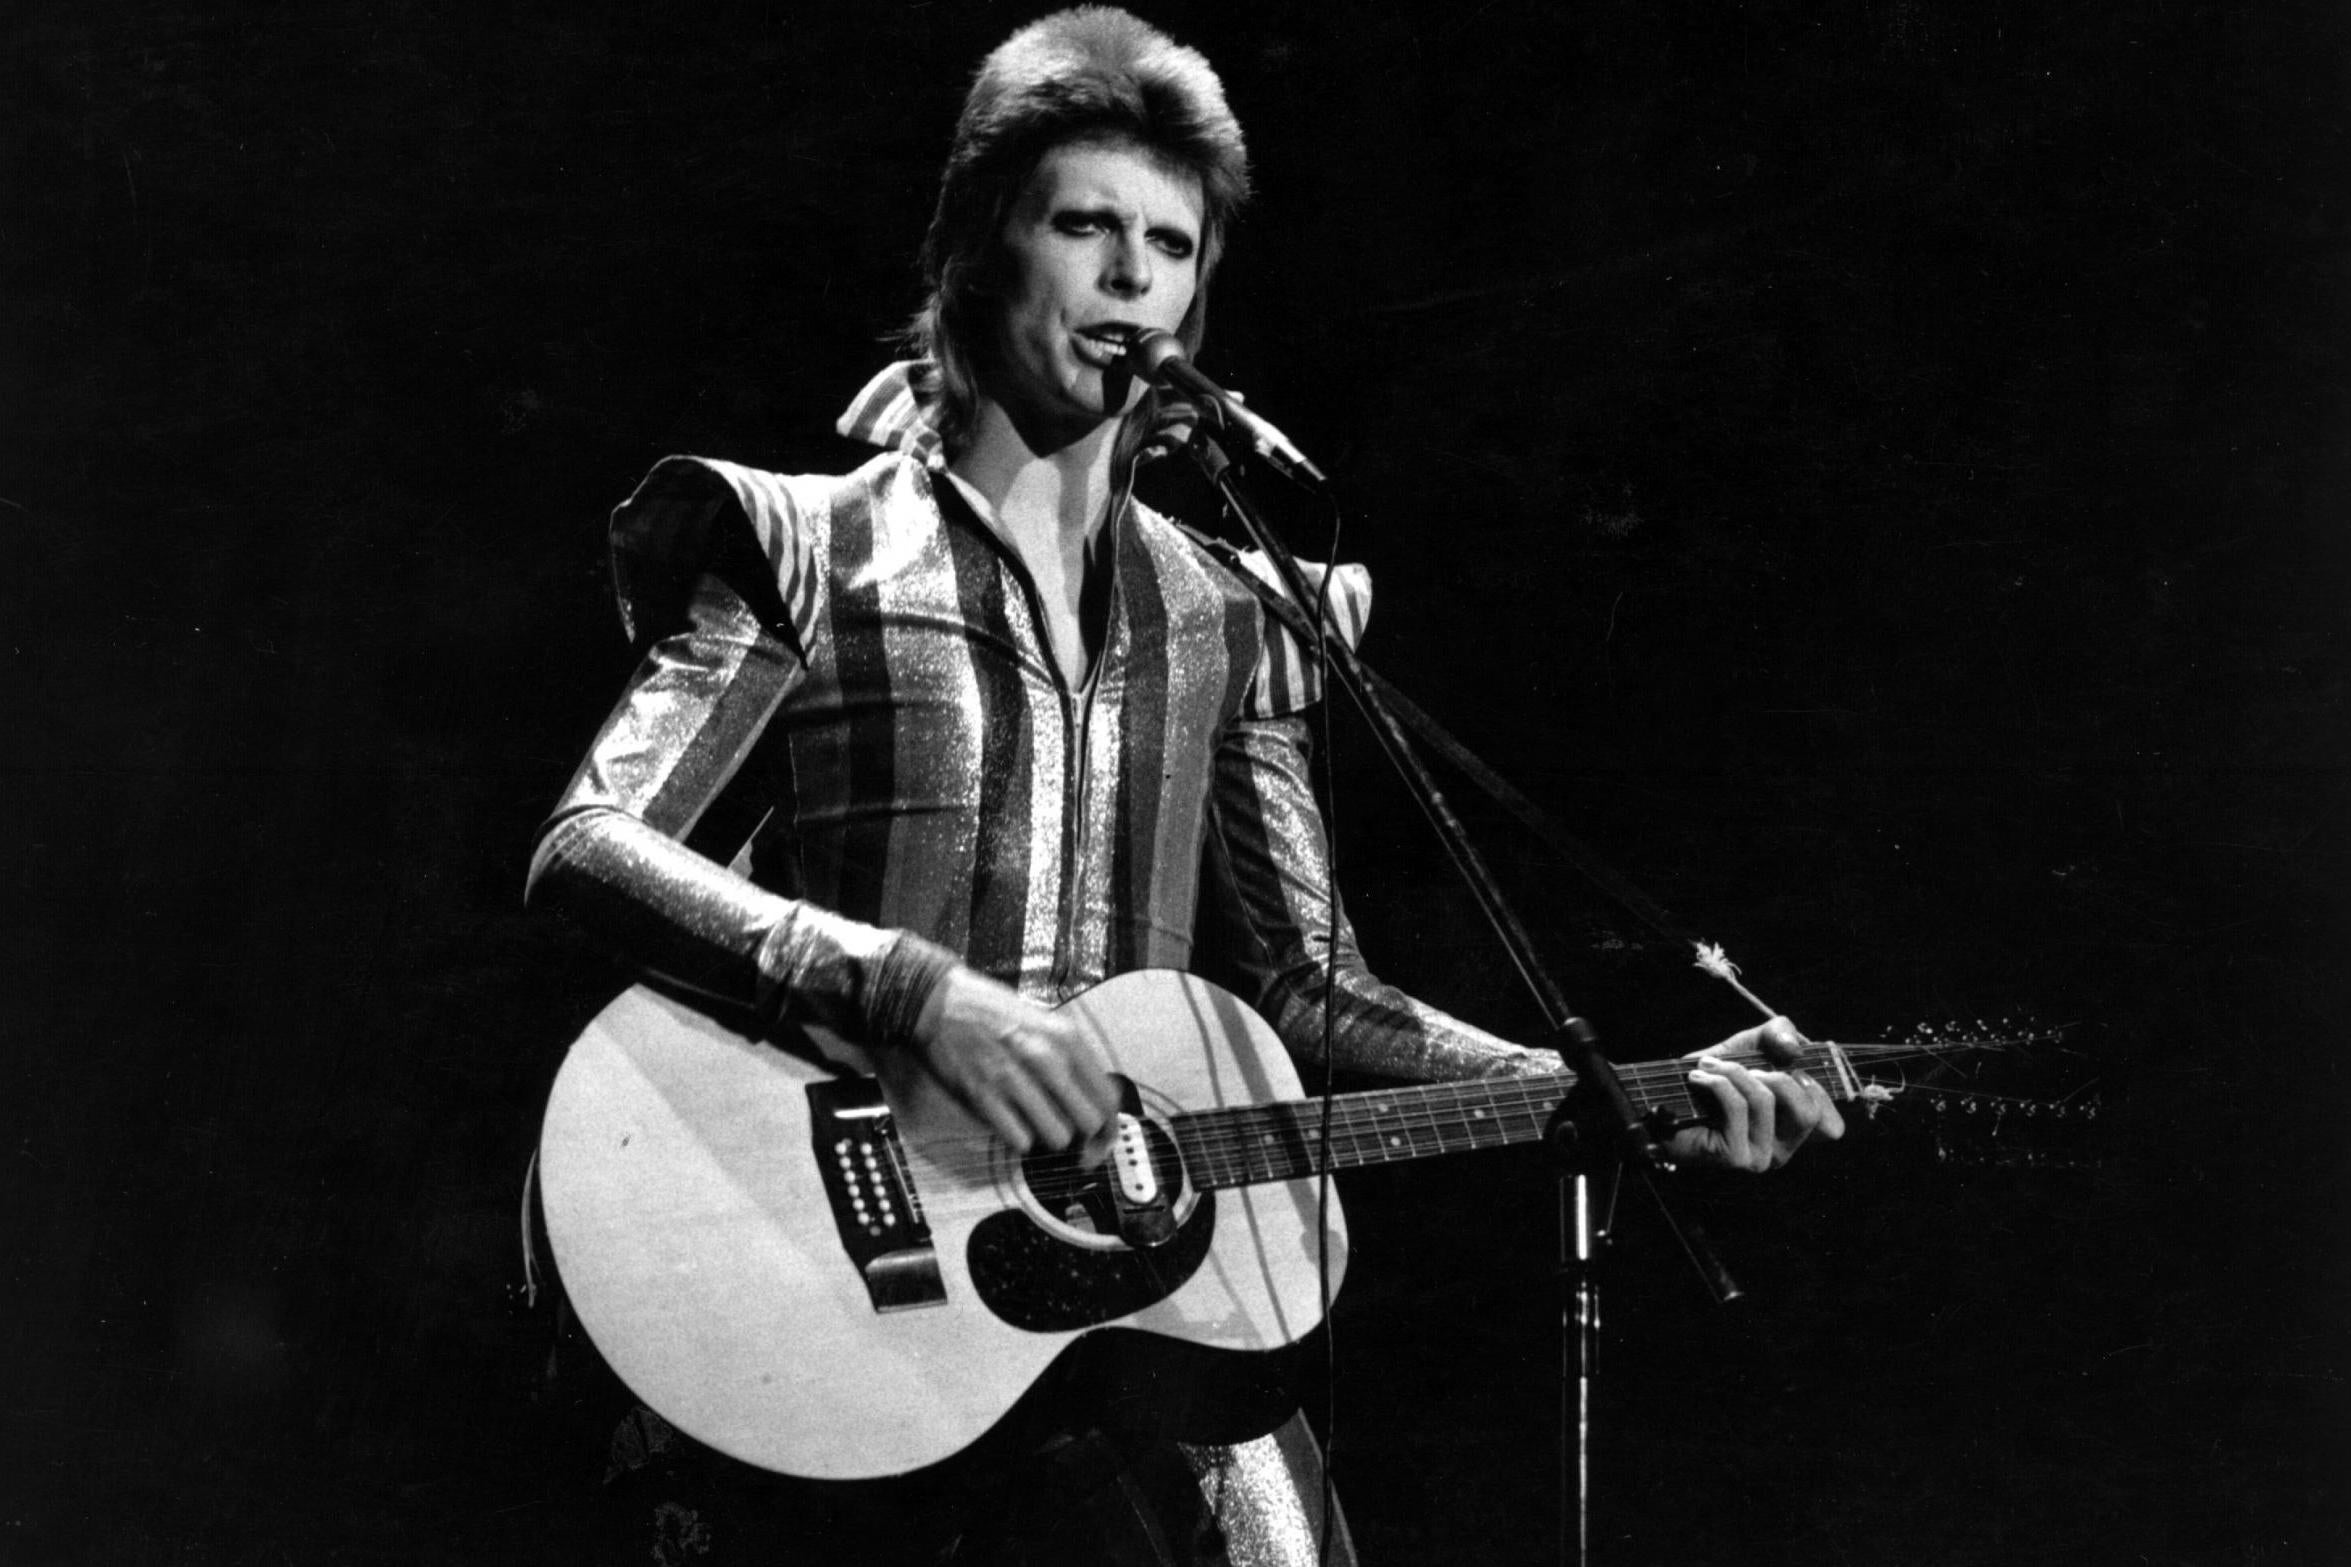 David Bowie named greatest entertainer of the 20th century, poll finds